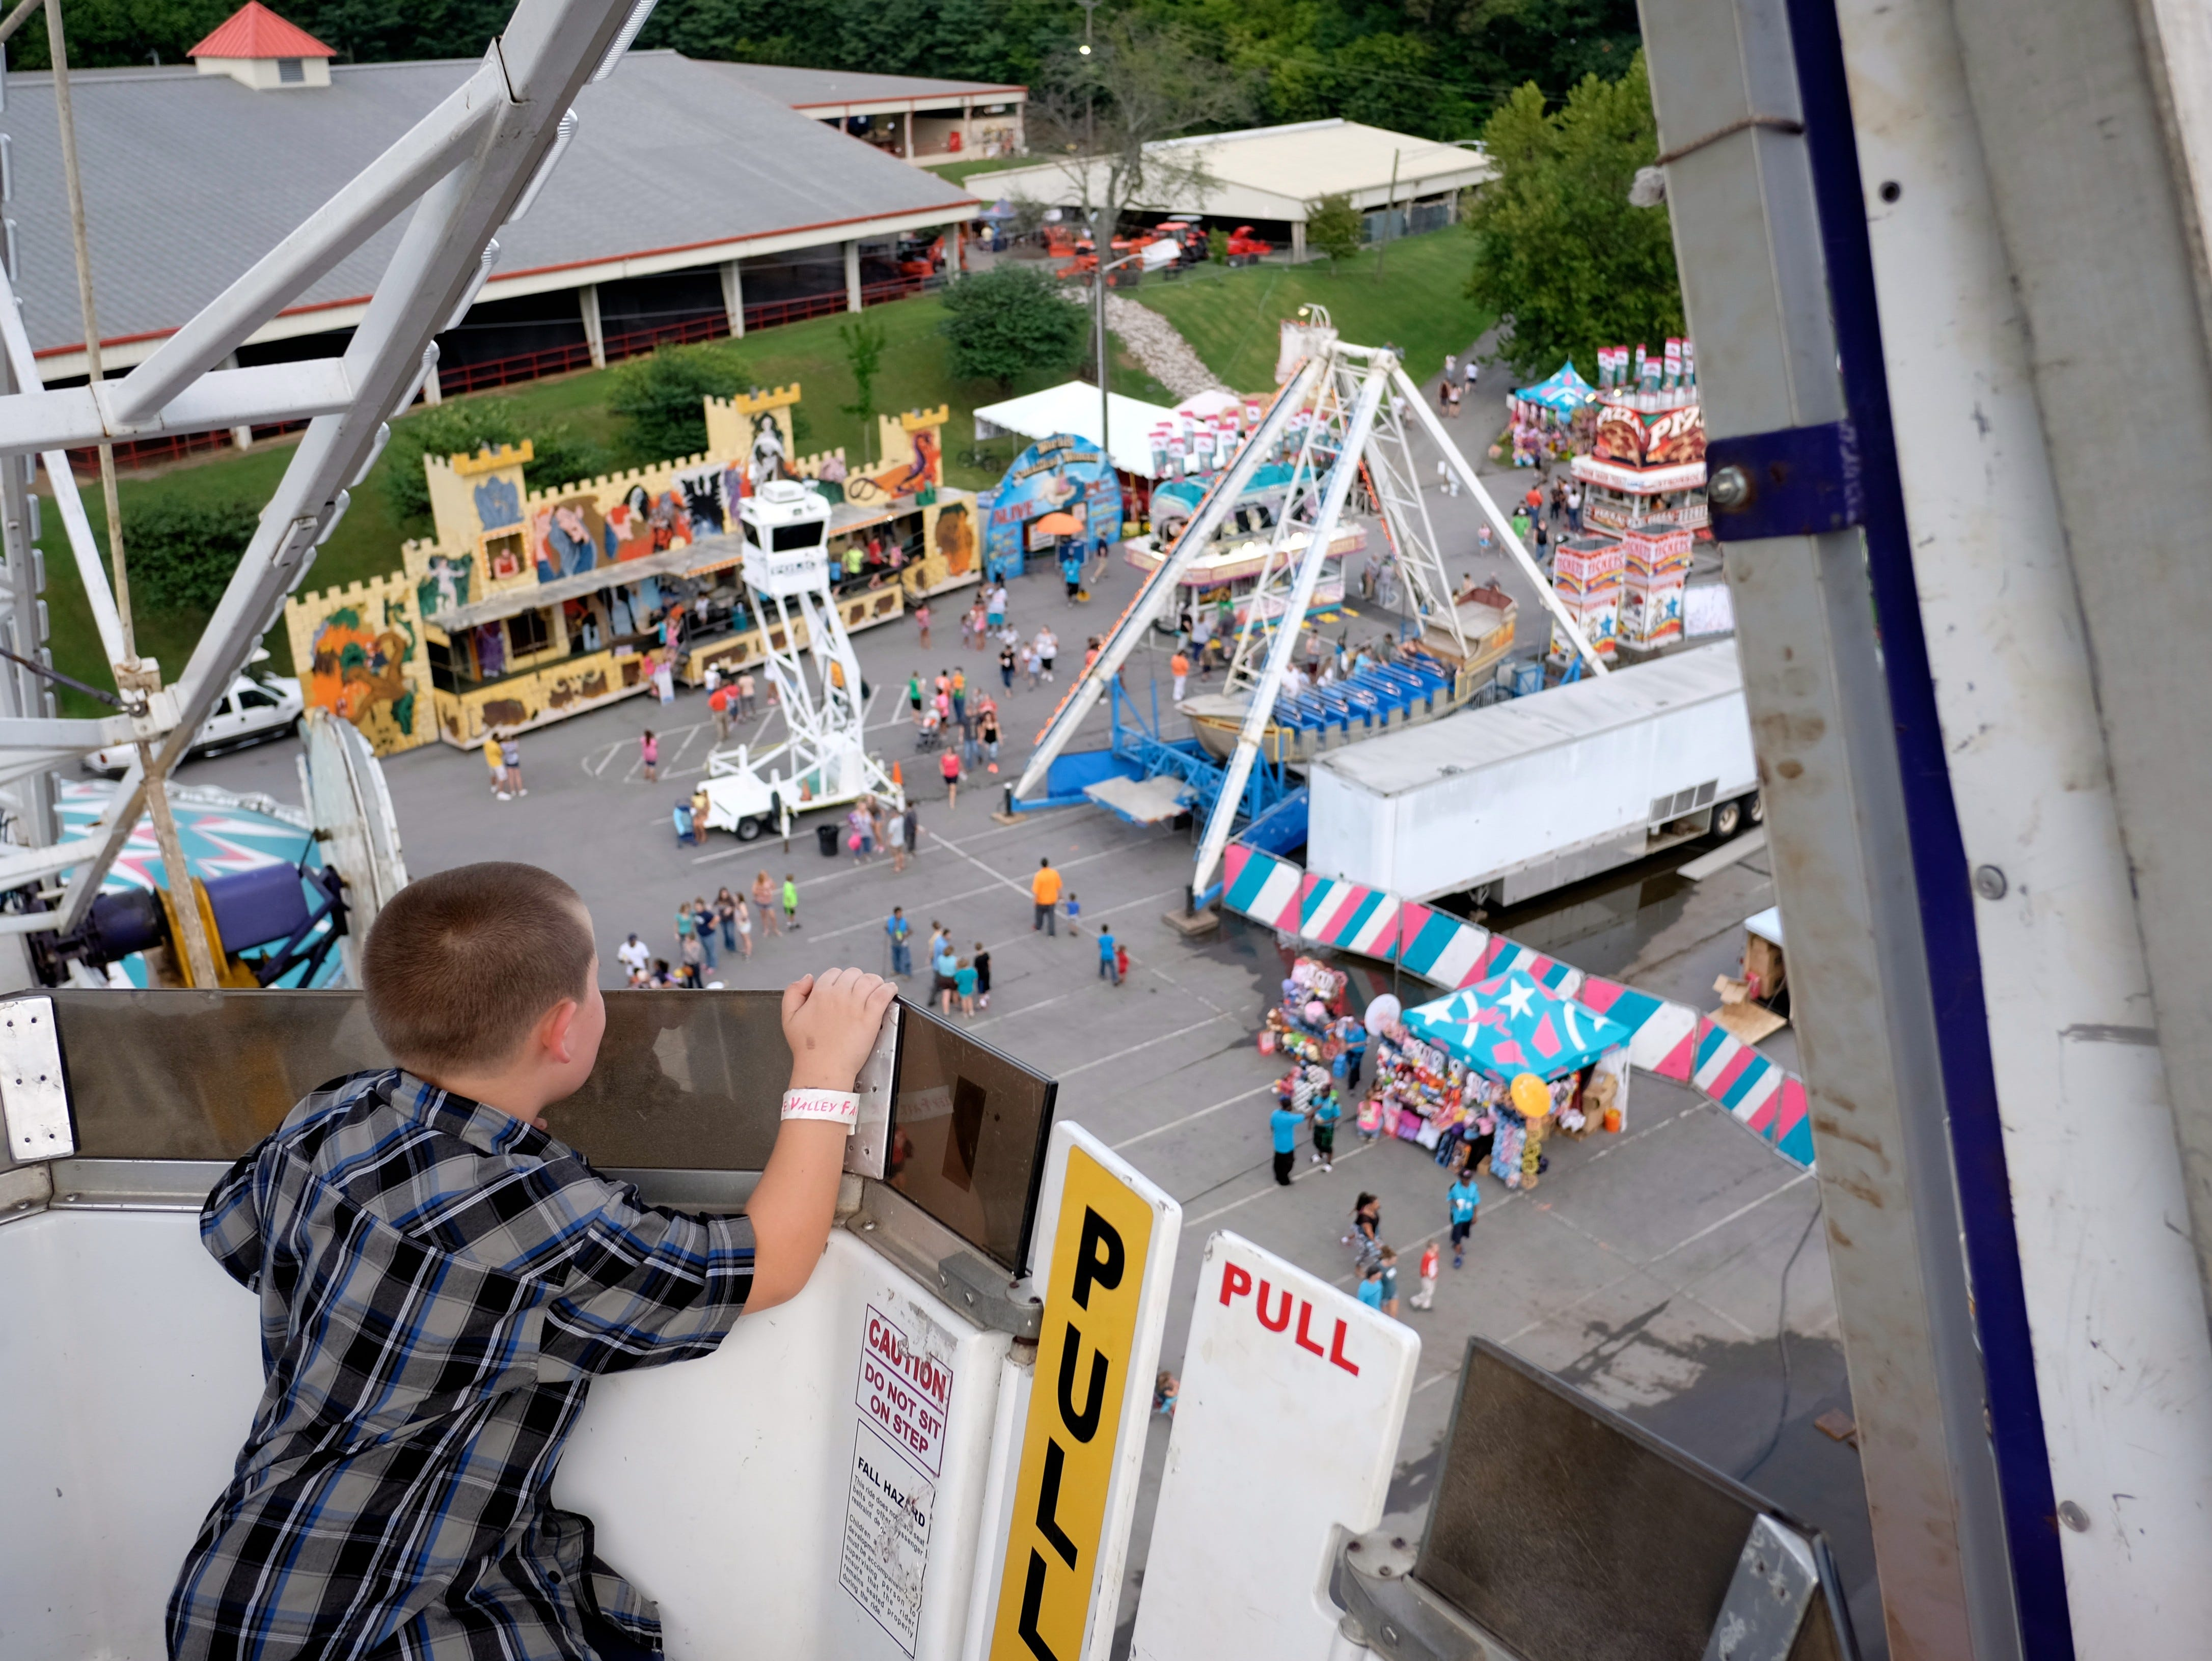 Fair goer Jacob Poor, 6, looks over the edge of a ferris wheel  during the 2014 Tennessee Valley Fair in Knoxville, Tenn., on Friday, September 5, 2014.